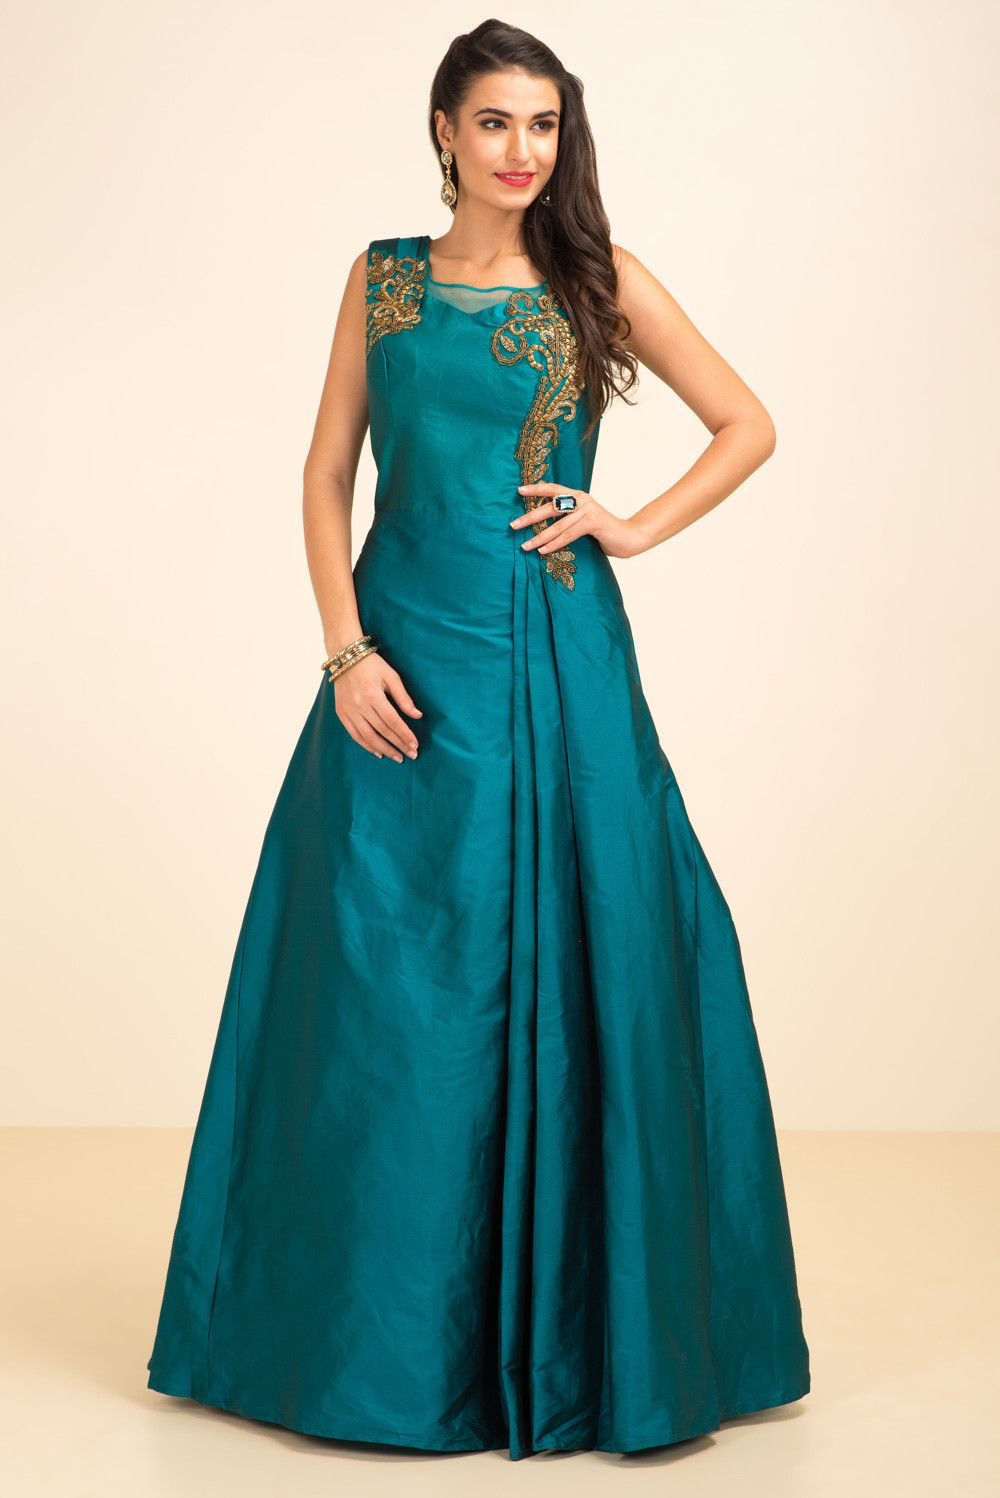 THE STYLE LOFT BY RITU DEORA Teal Green Embroidered Gown #flyrobe ...